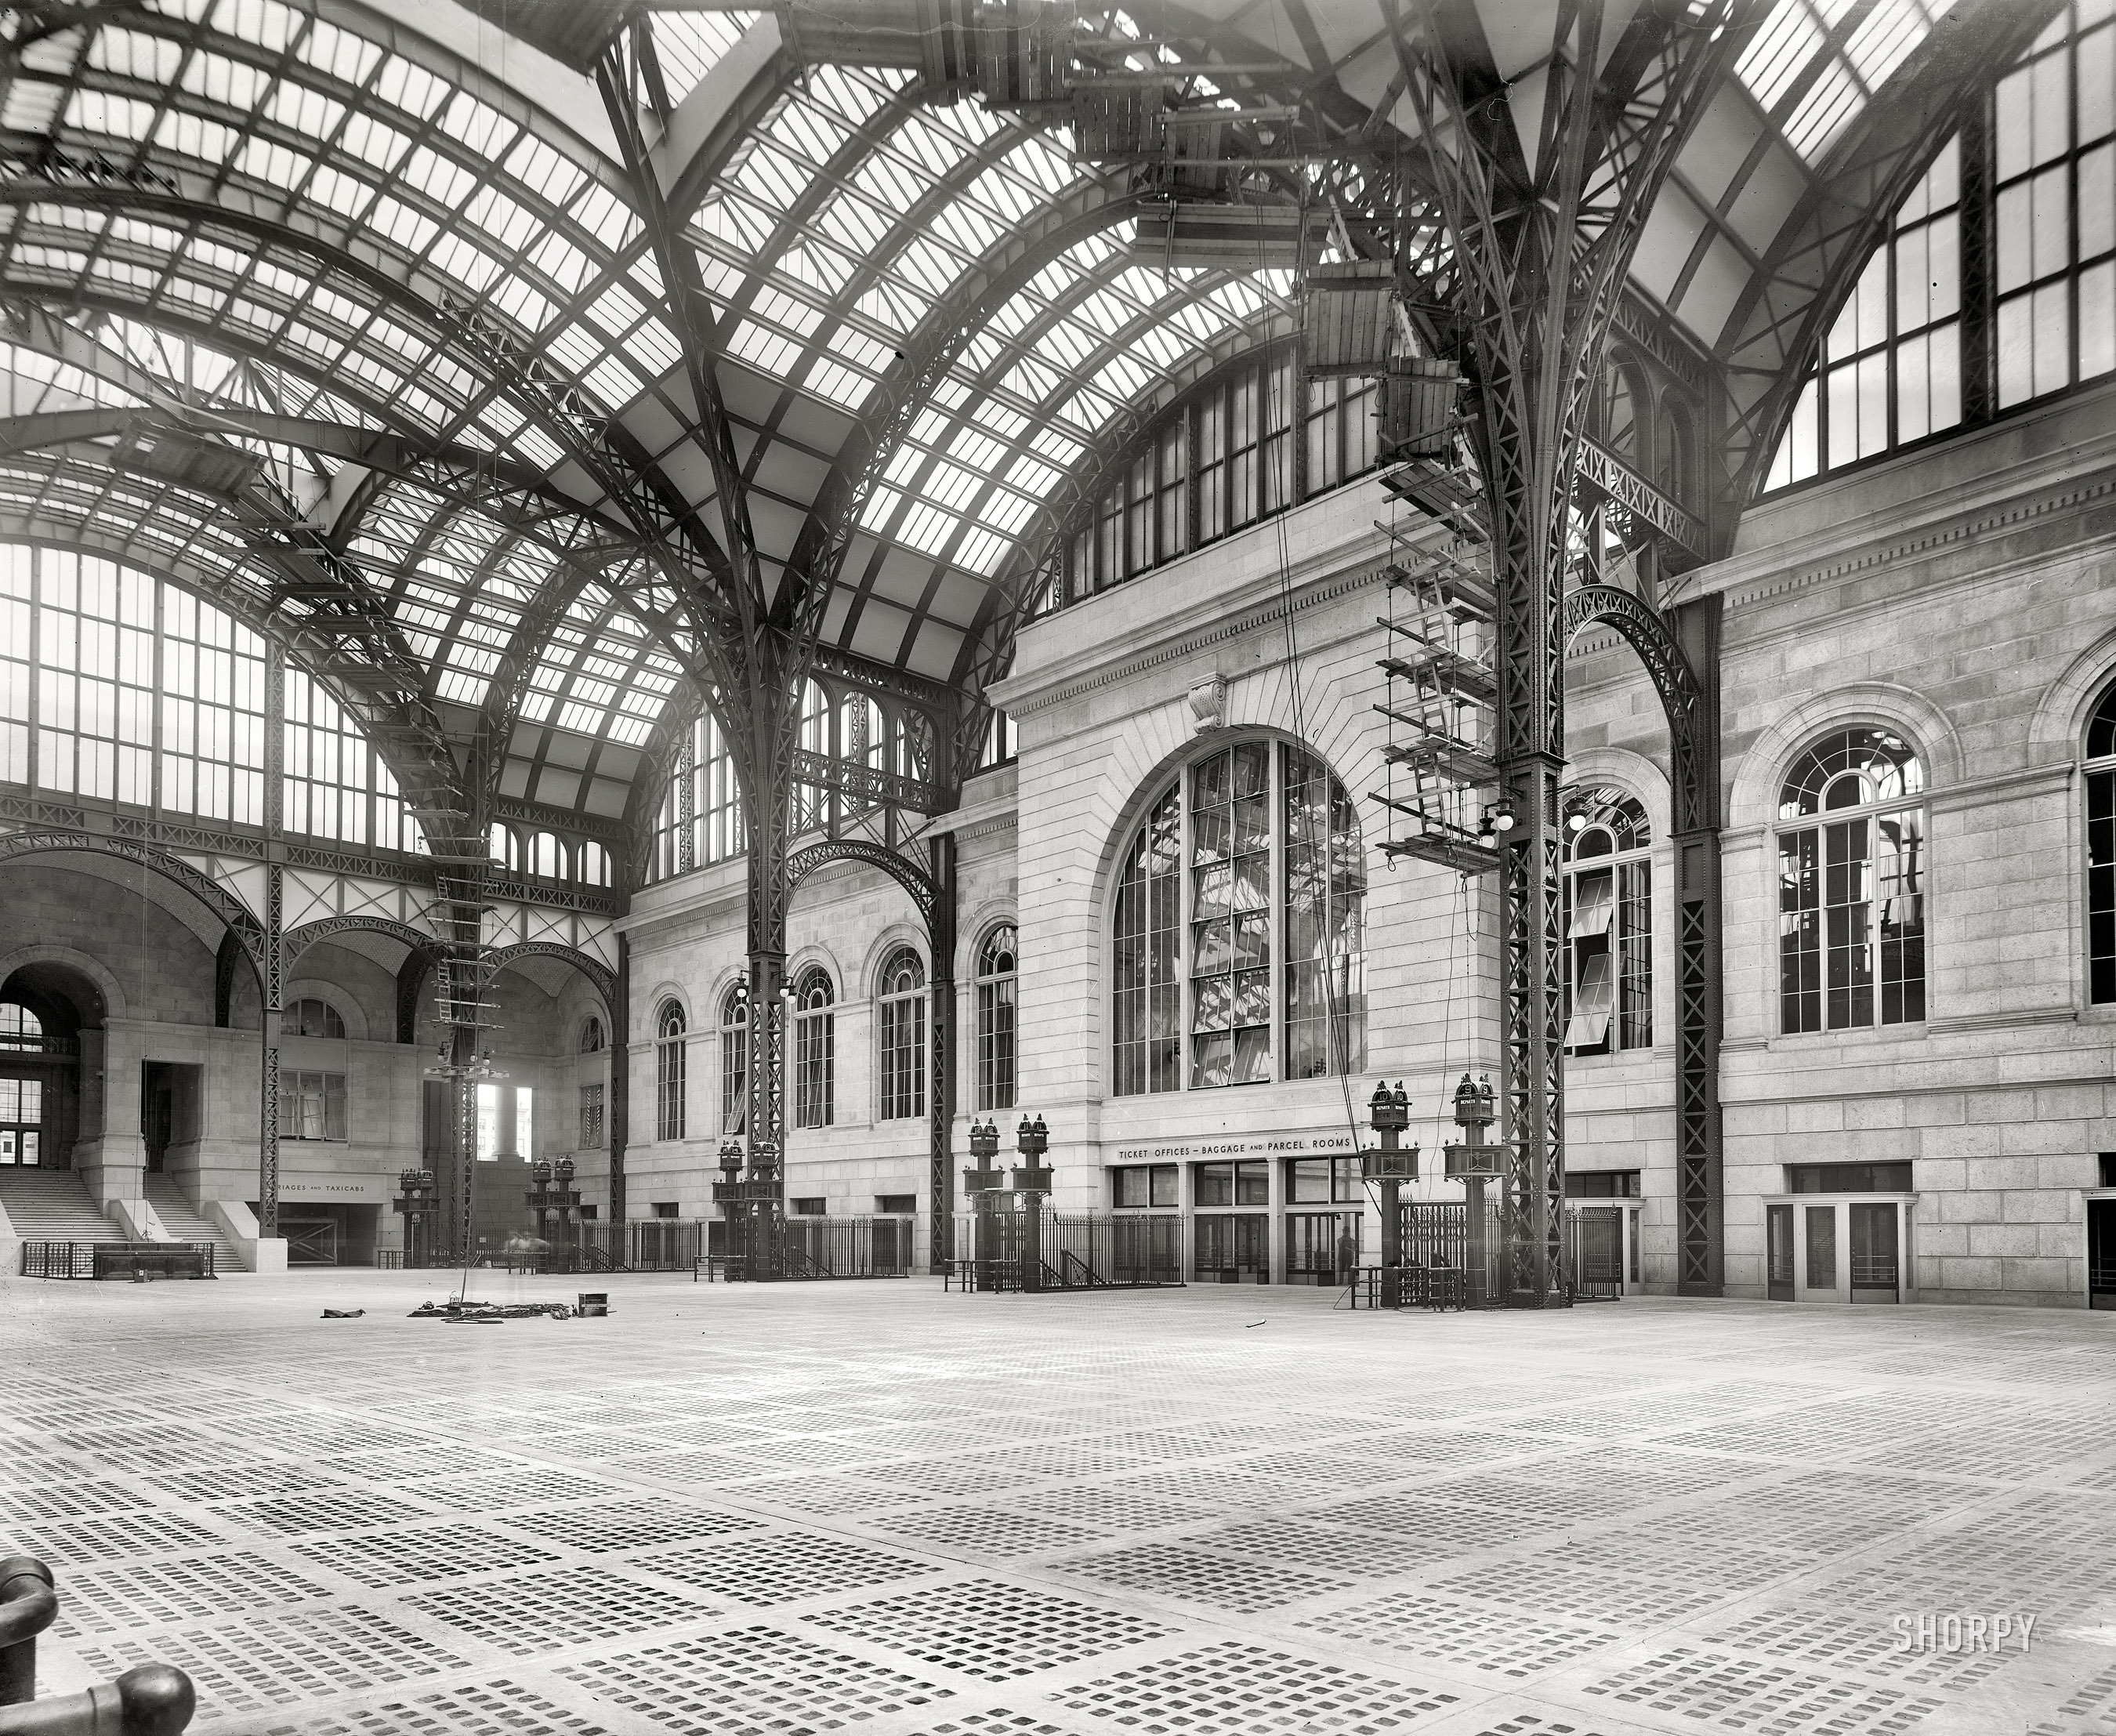 Maud Newton Penn Station In 1910 When The Platforms